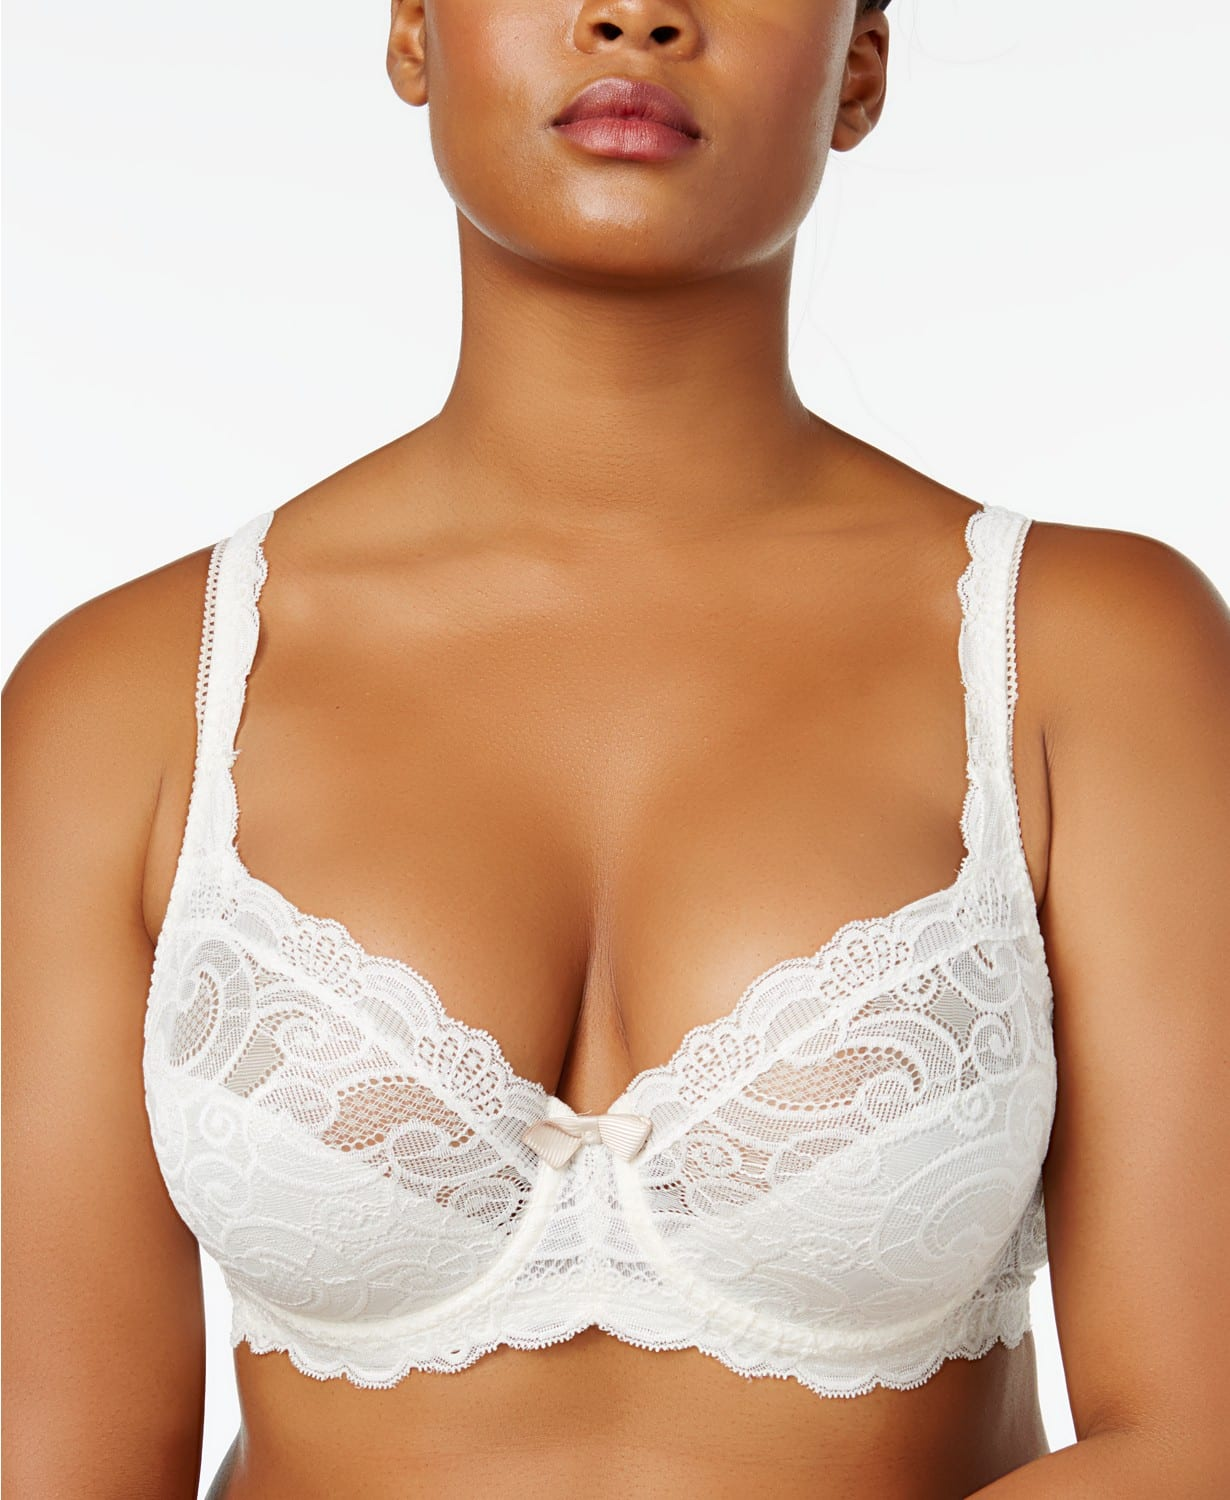 Women's Bras: Bali, Playtex, Maidenform